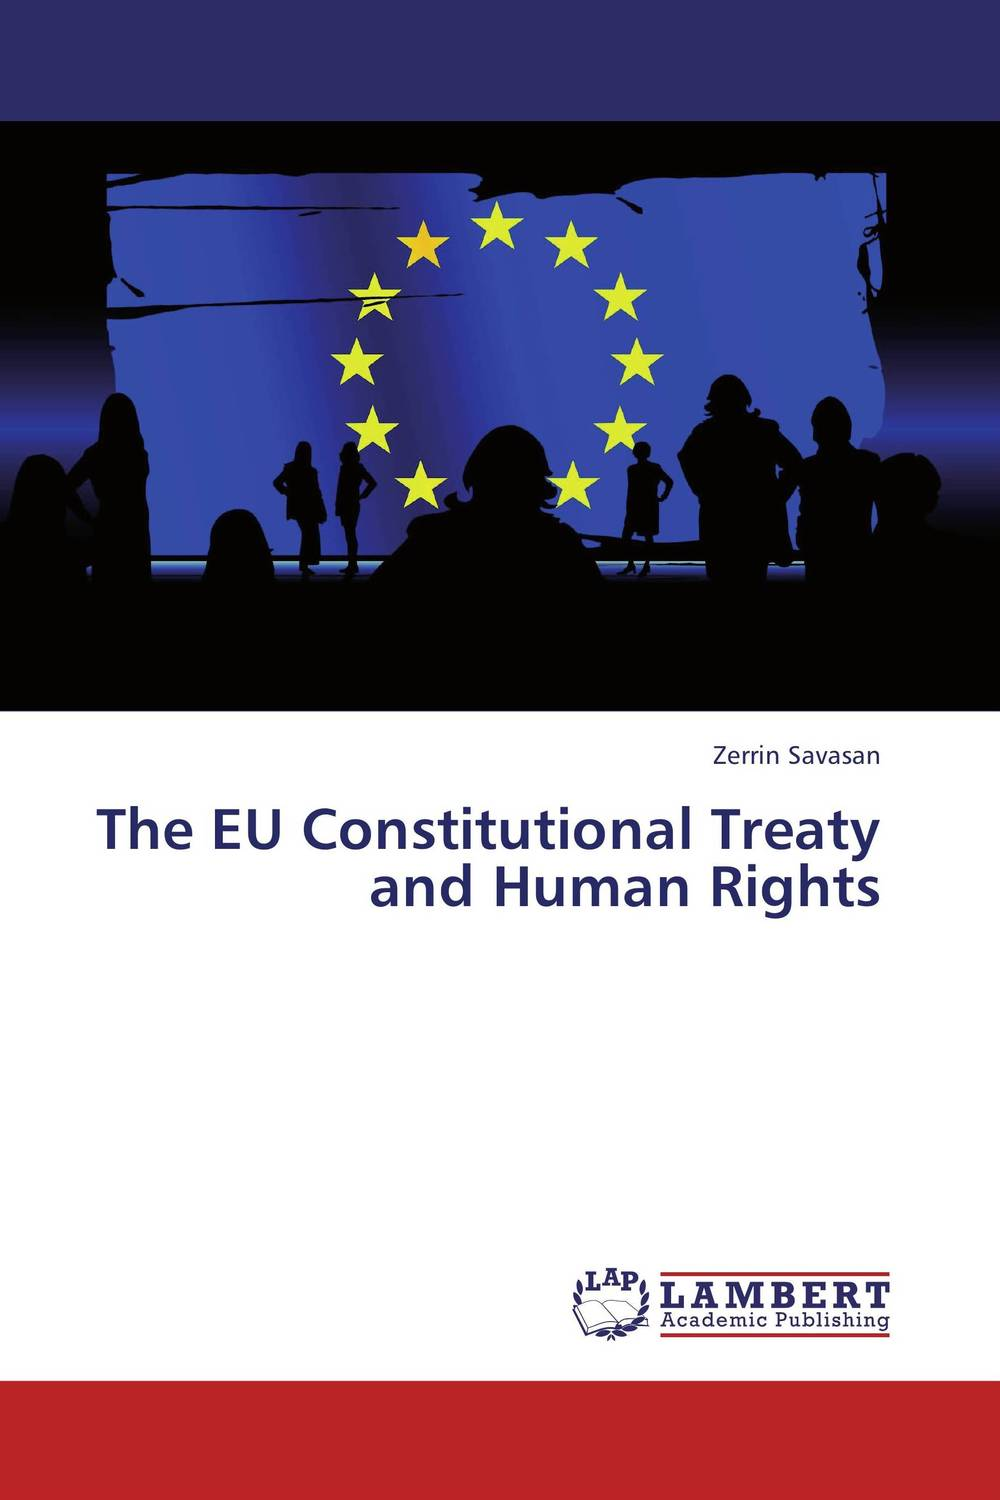 The EU Constitutional Treaty and Human Rights foreign policy as a means for advancing human rights